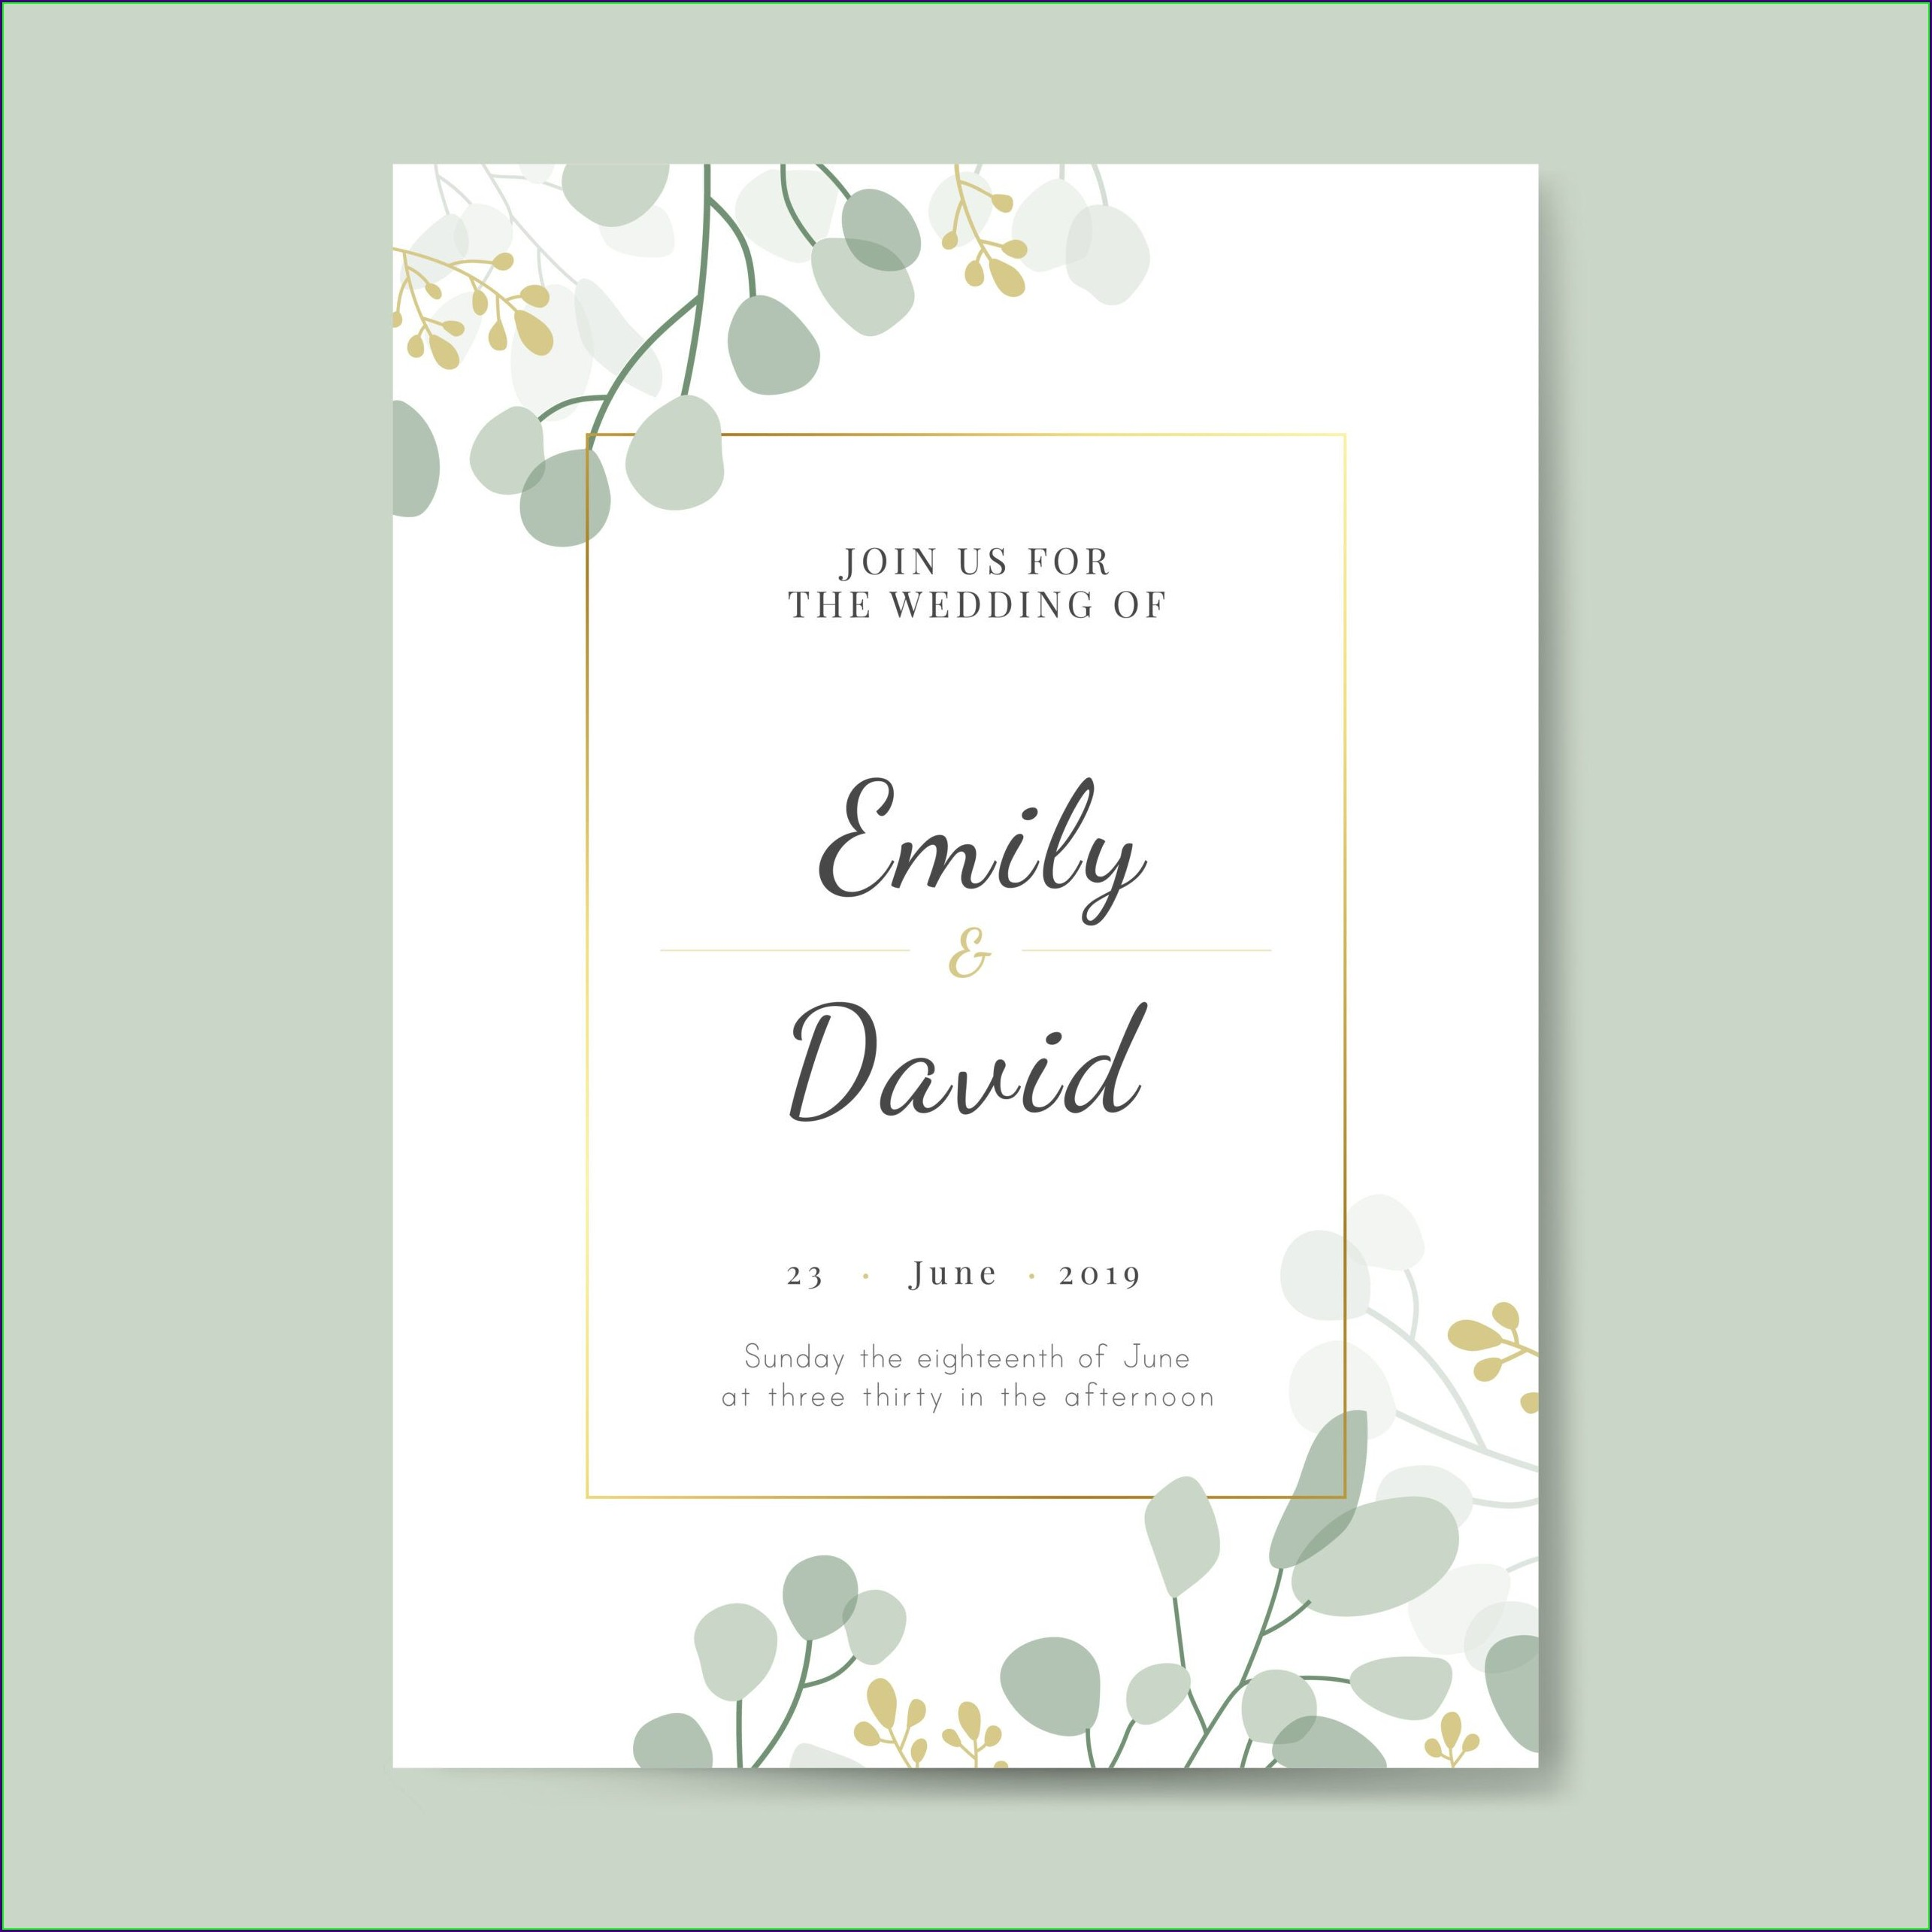 Invitation Card Design Template Free Download